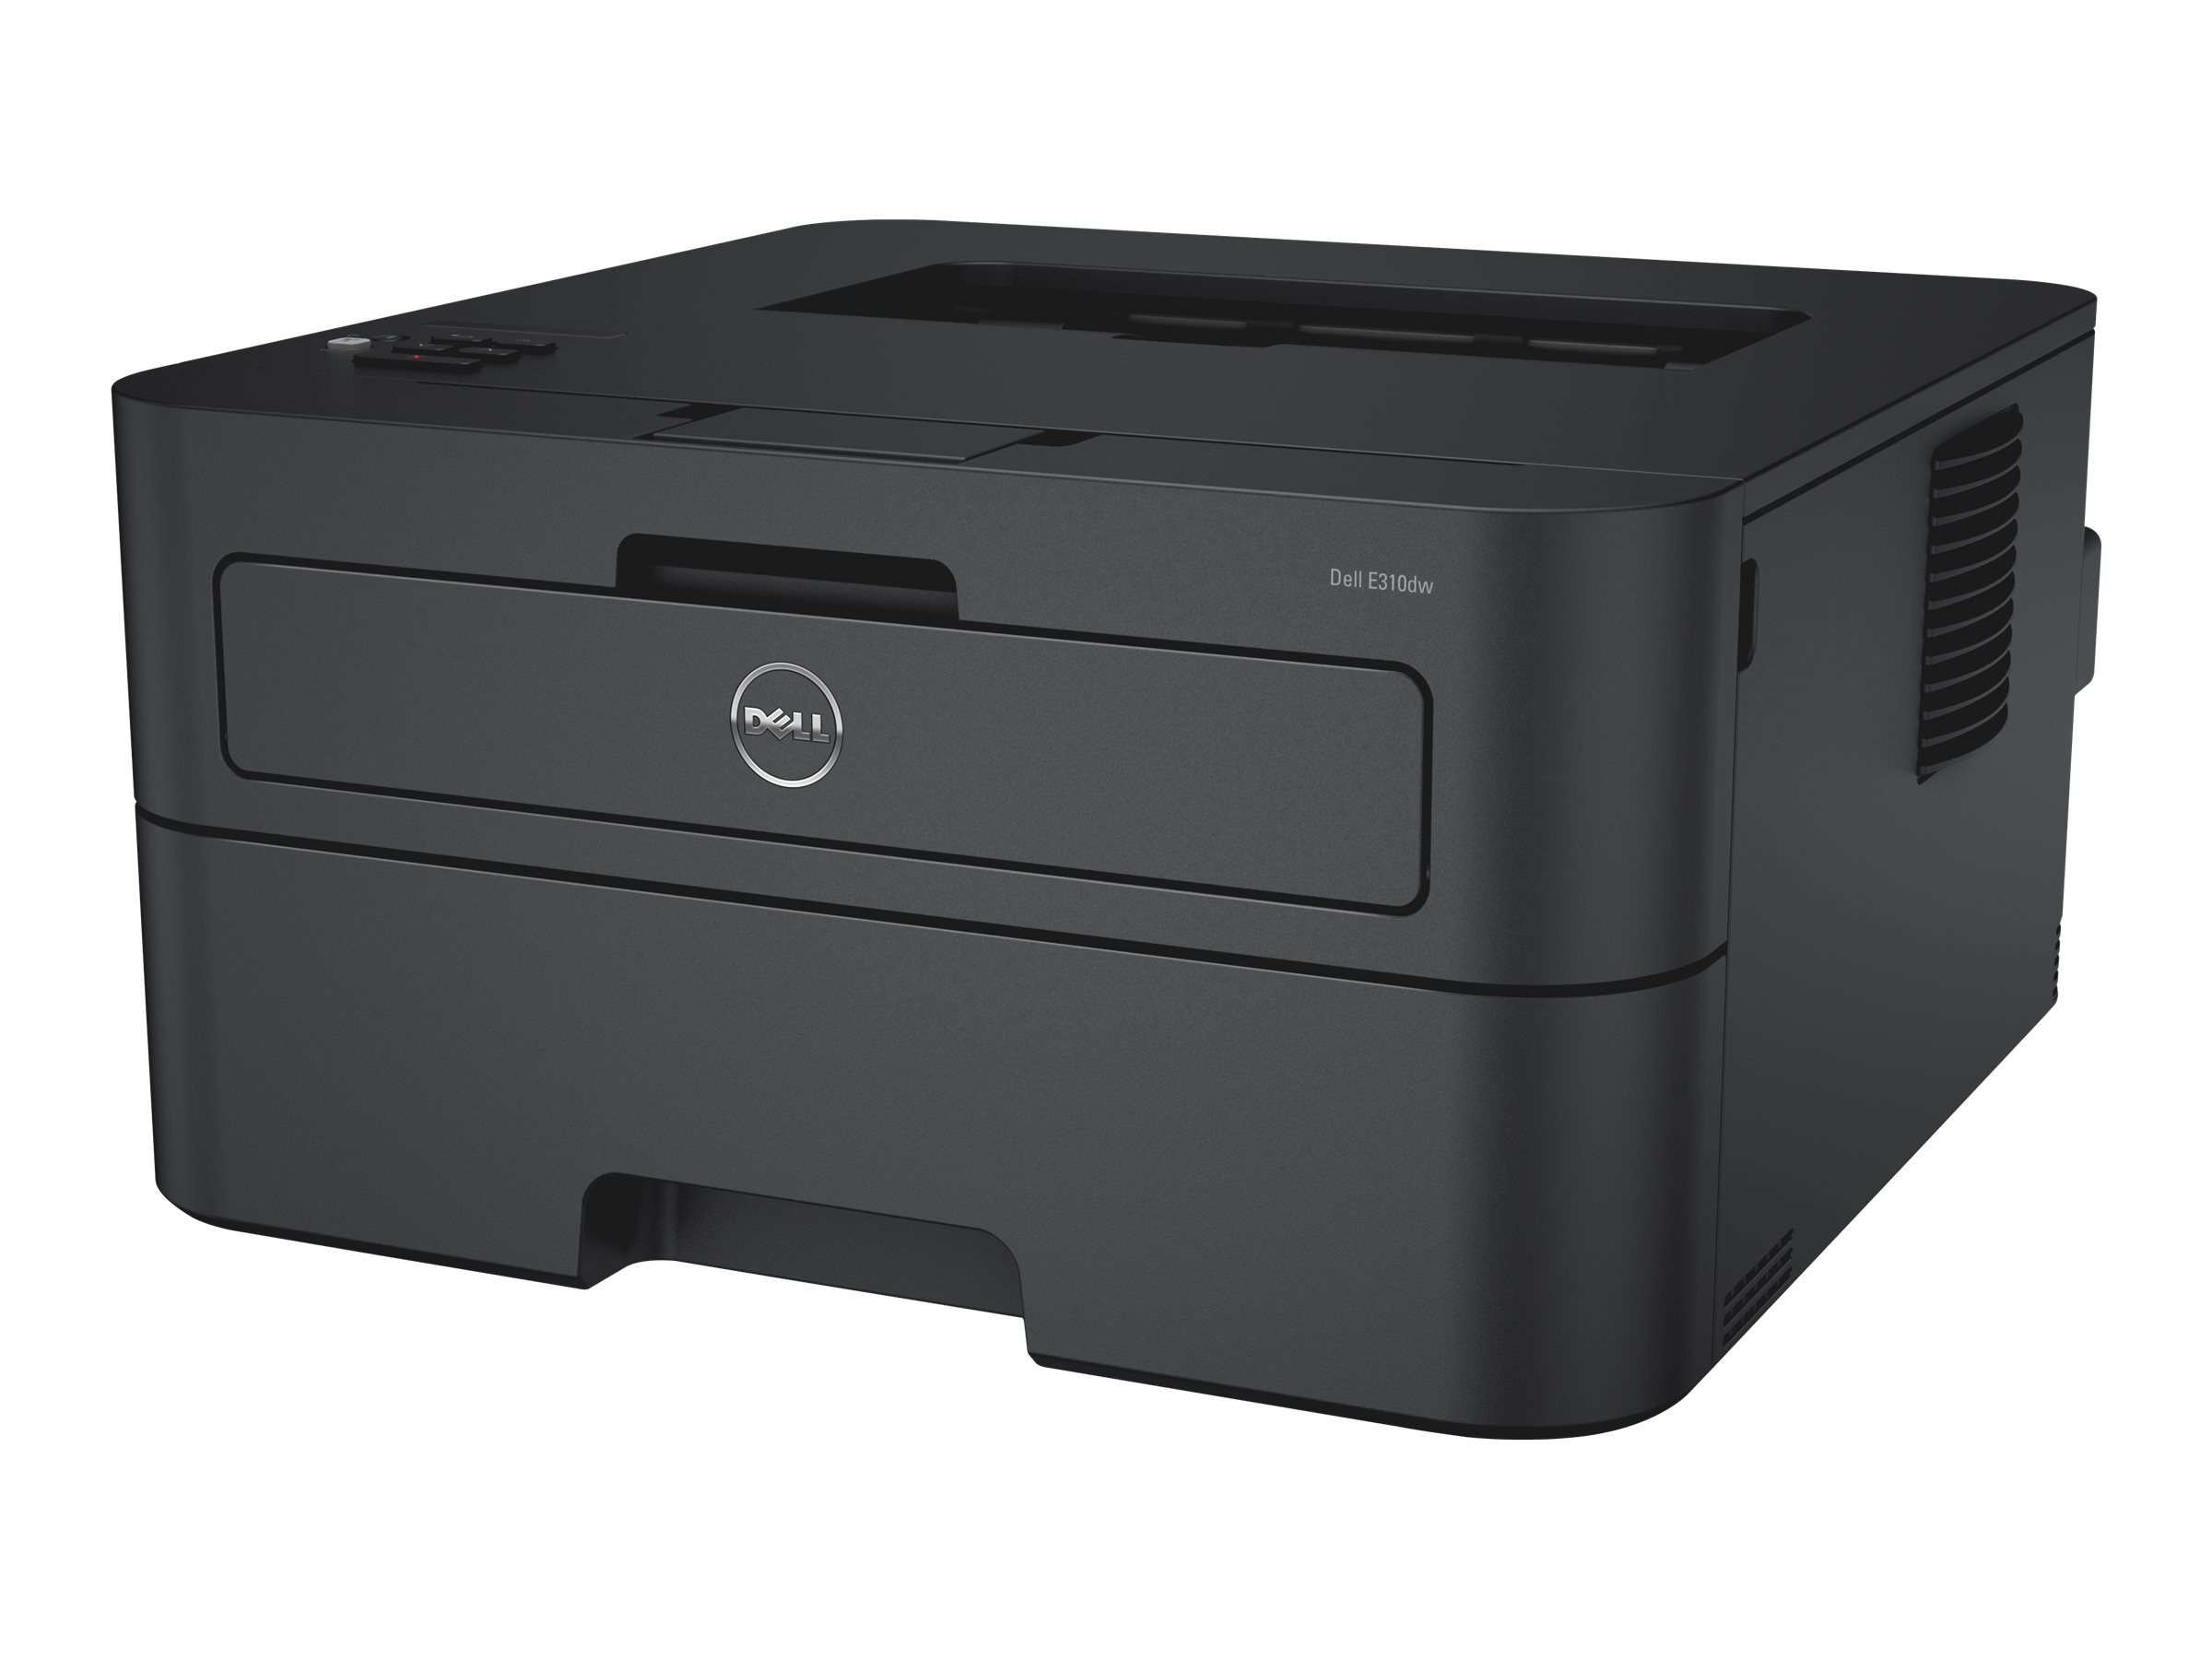 Dell E310dw Black & White Laser Printer (210-AEHL), 70X0H, 22247442, Printers - Laser & LED (monochrome)